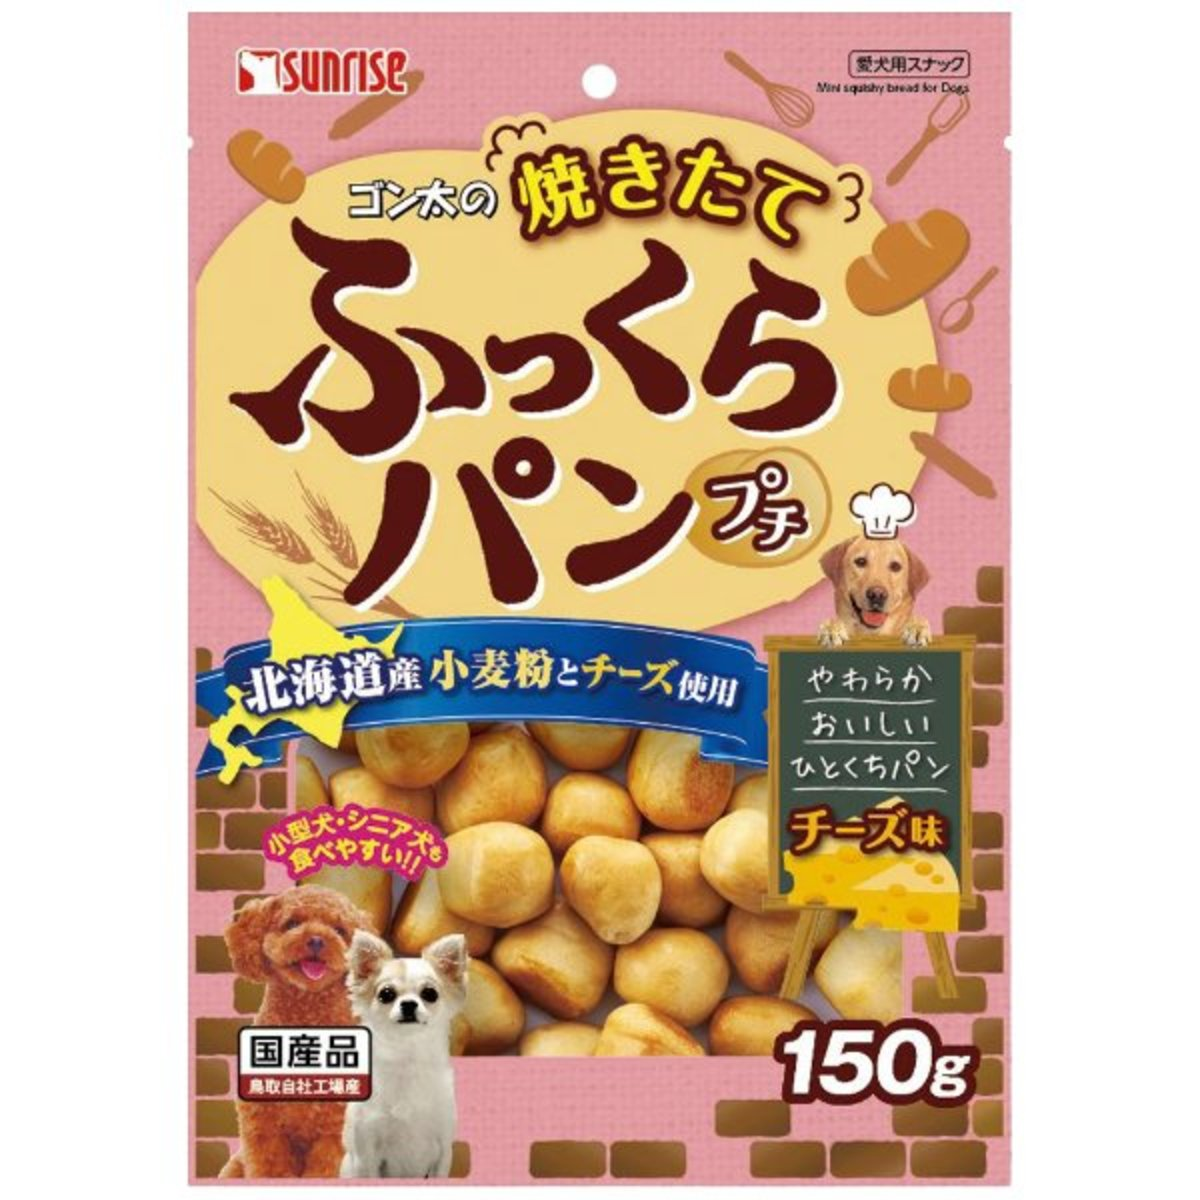 Cheese taste mini squishy bread for Dogs 150g